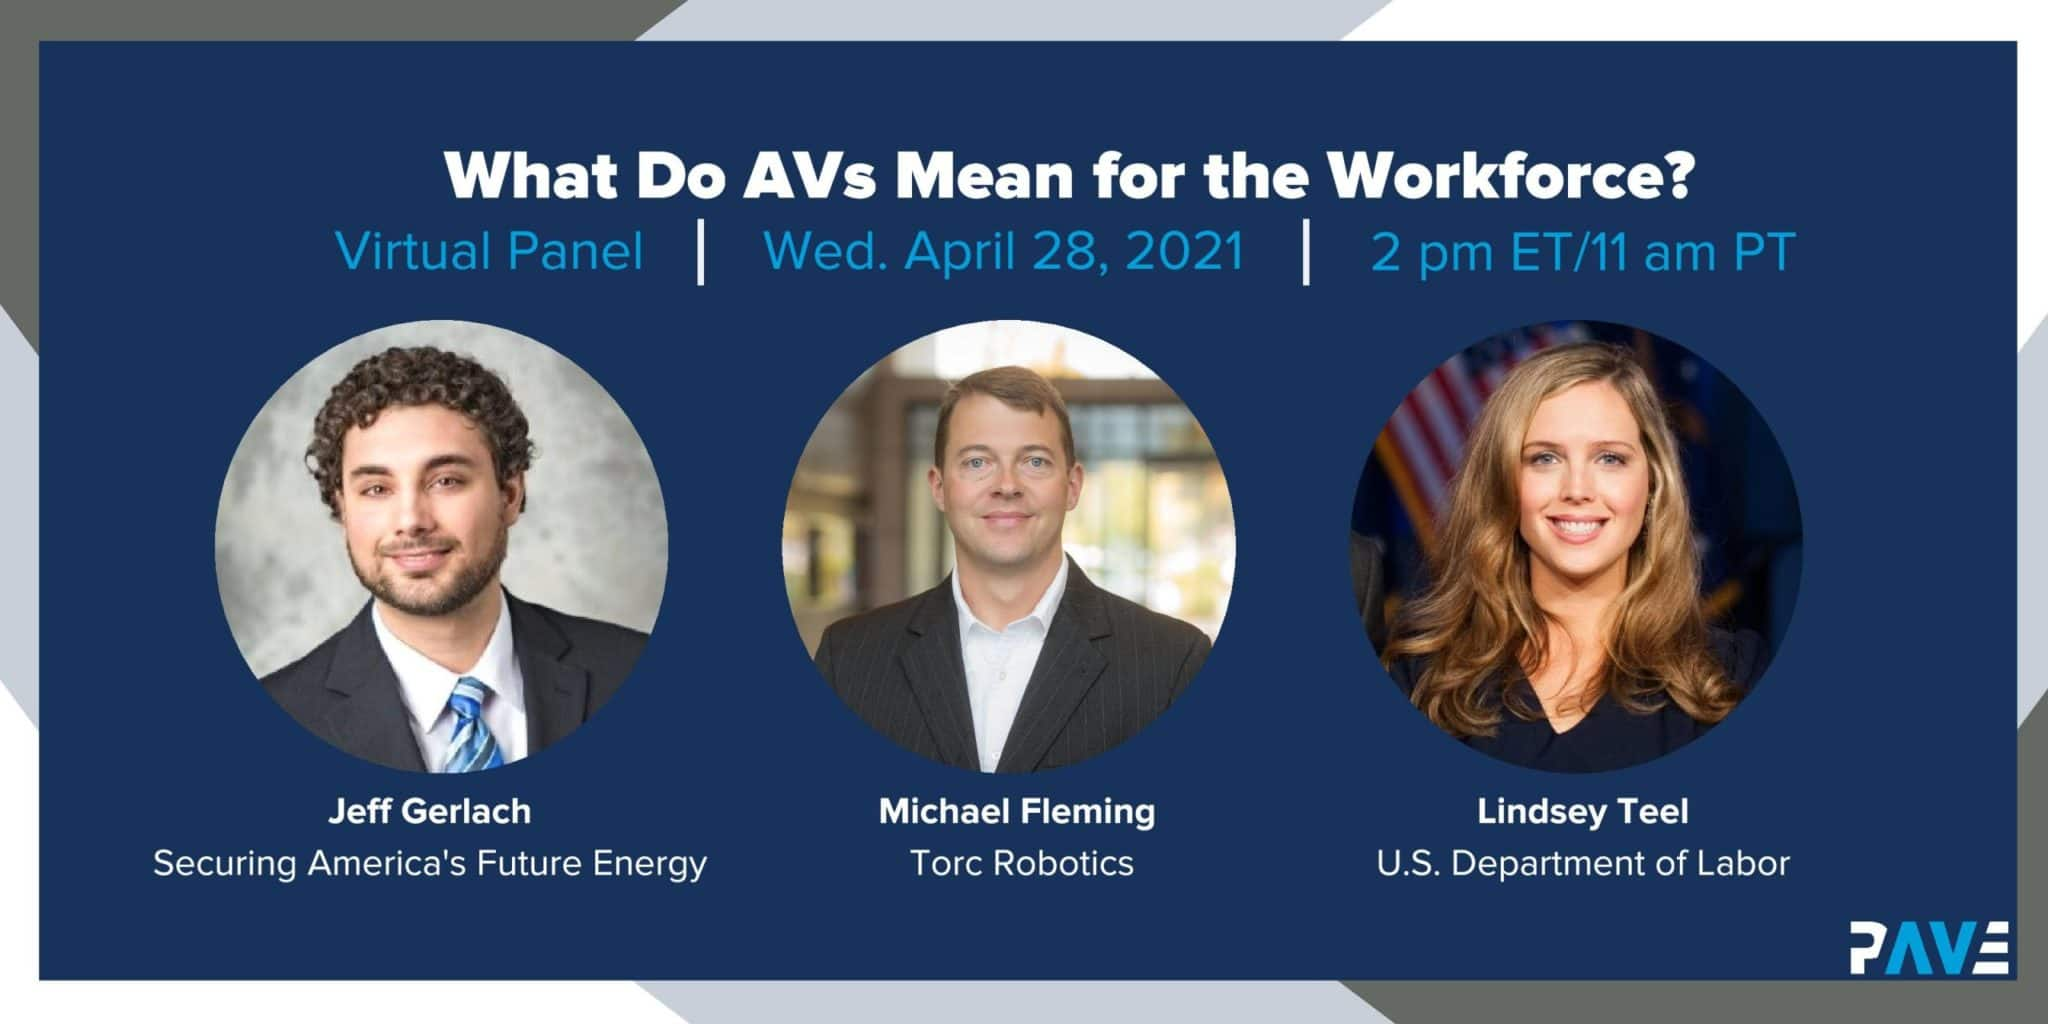 PAVE Virtual Panel: What Do AVs Mean for the Workforce?